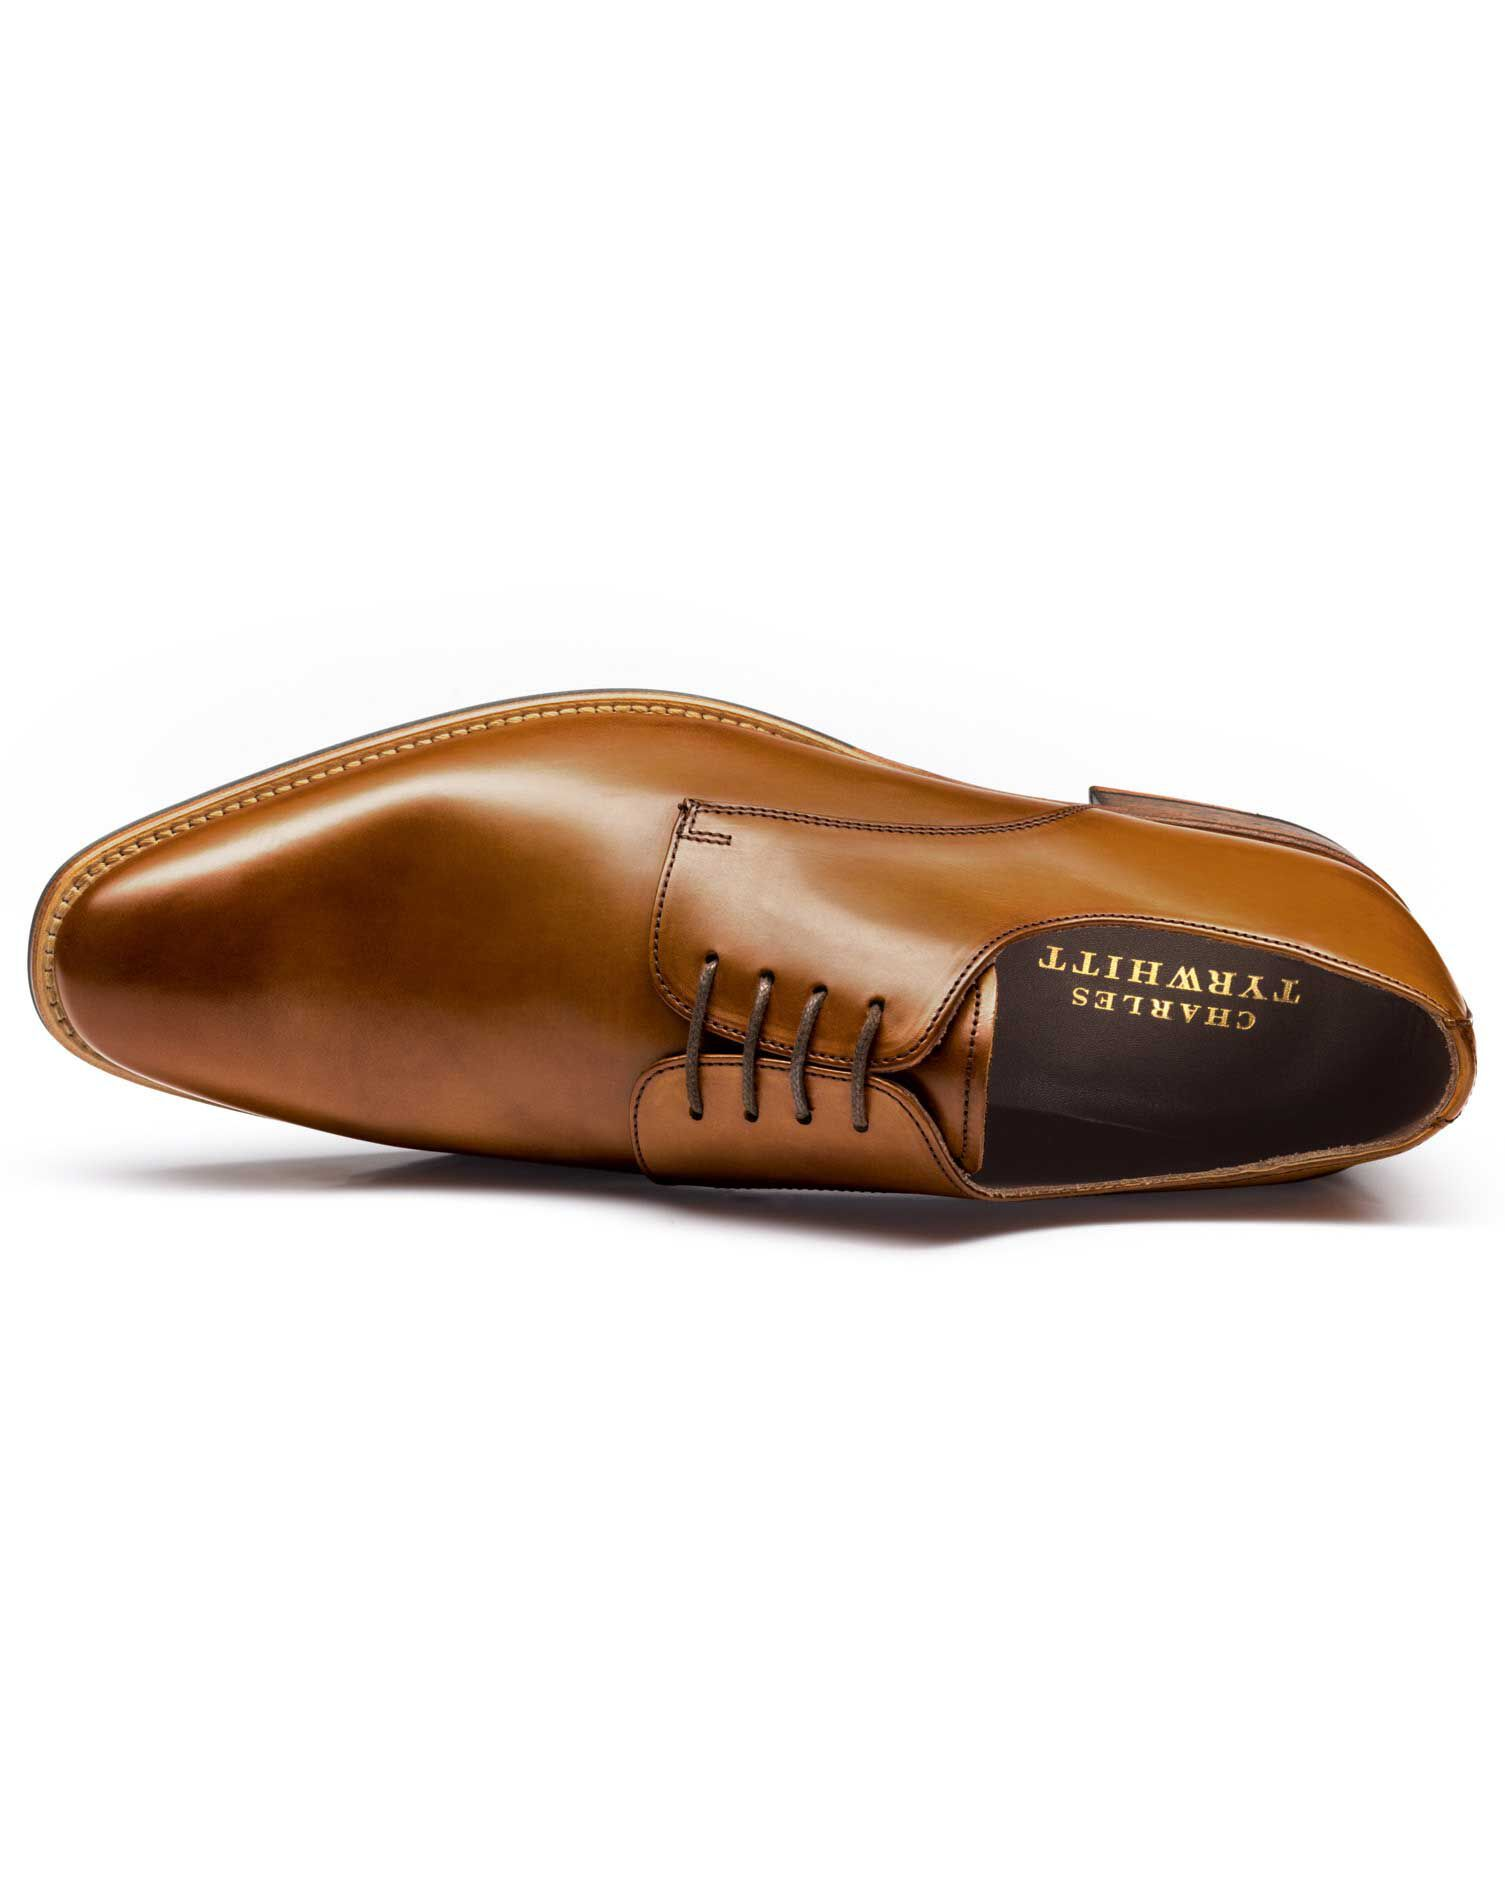 Tan Grosvenor Derby Shoes Size 9.5 by Charles Tyrwhitt